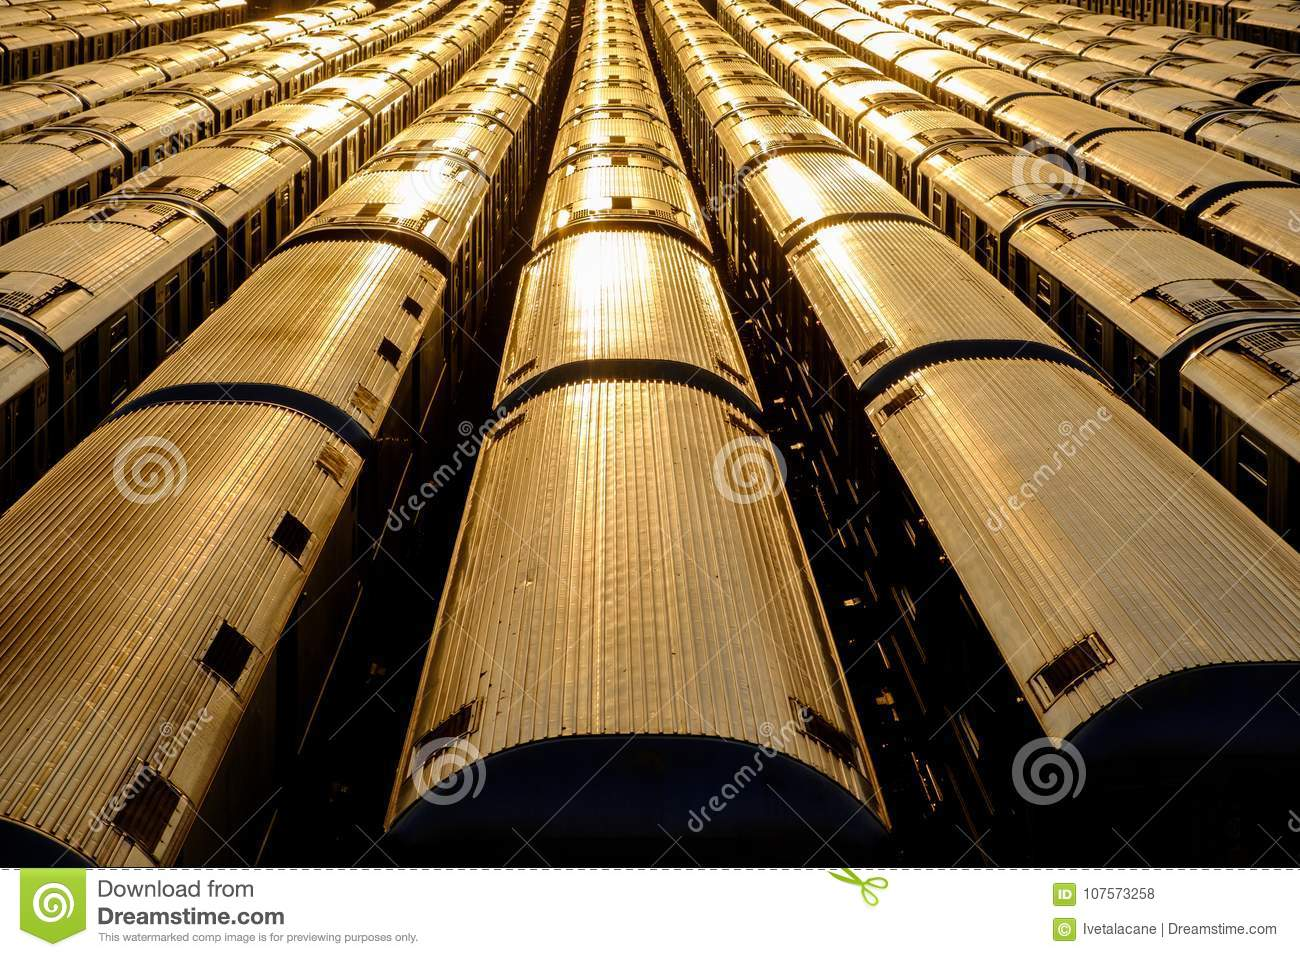 Subway train car tops stock photo  Image of transportation - 107573258